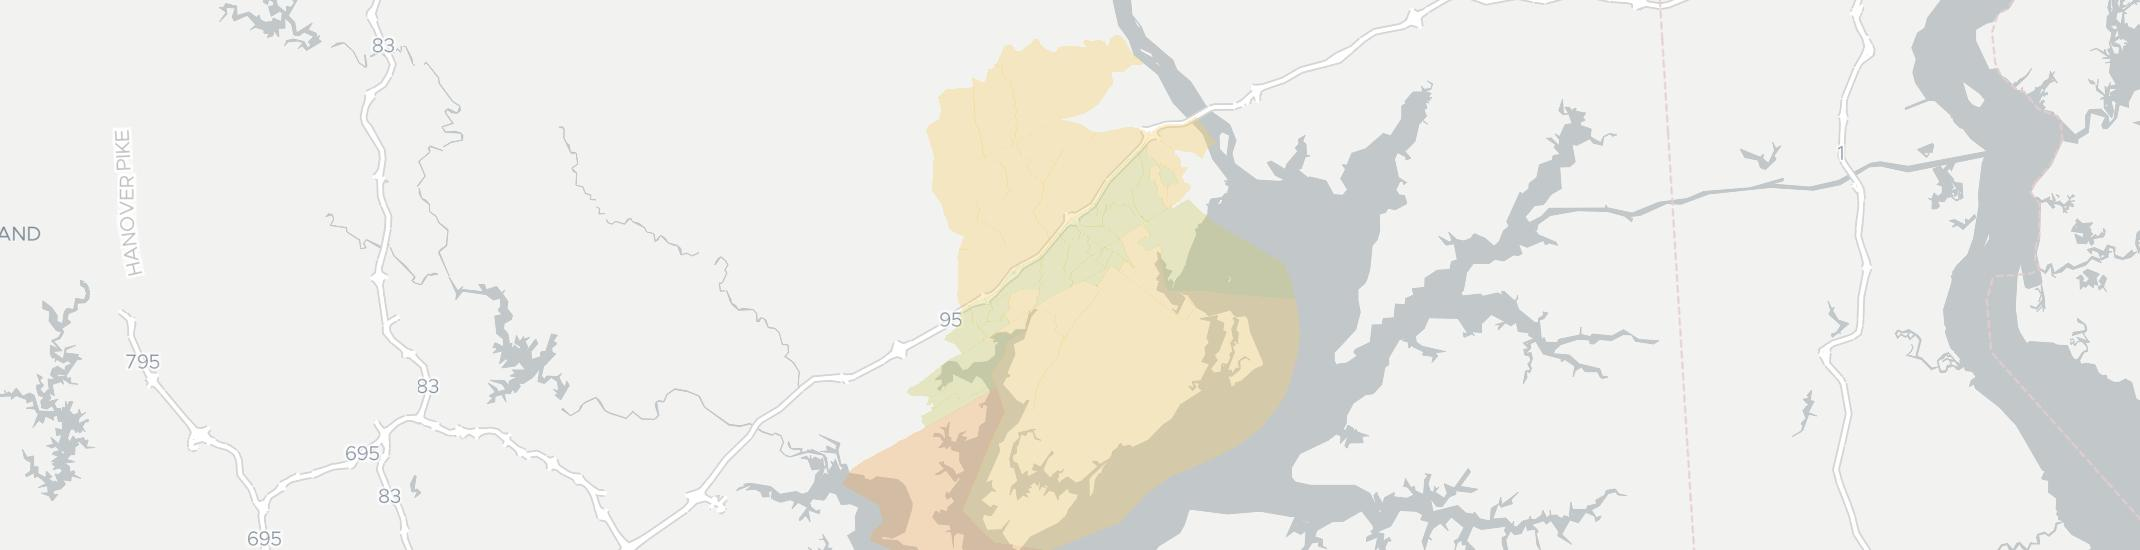 Aberdeen Internet Competition Map. Click for interactive map.